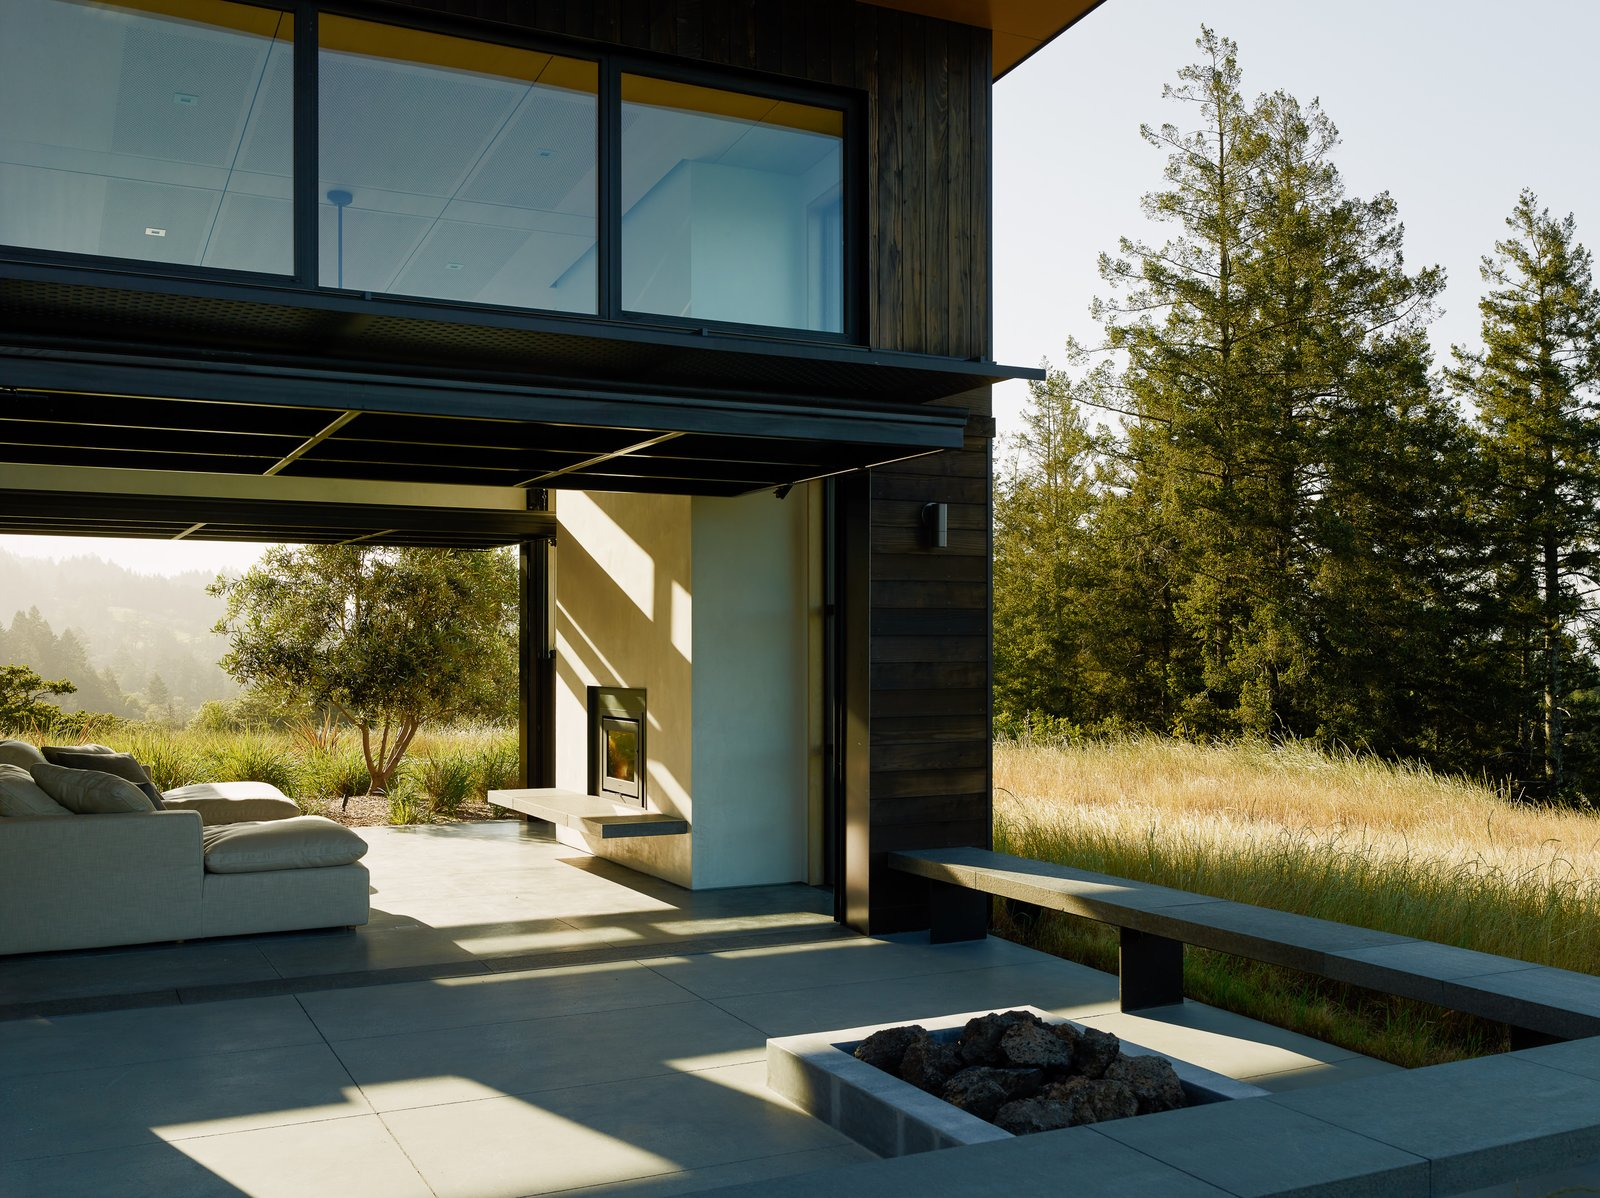 Outdoor, Side Yard, Shrubs, Concrete Patio, Porch, Deck, and Large Patio, Porch, Deck The expansive Northern Californian landscape seamlessly enters the home.  Photos from Sonoma Wine Country I